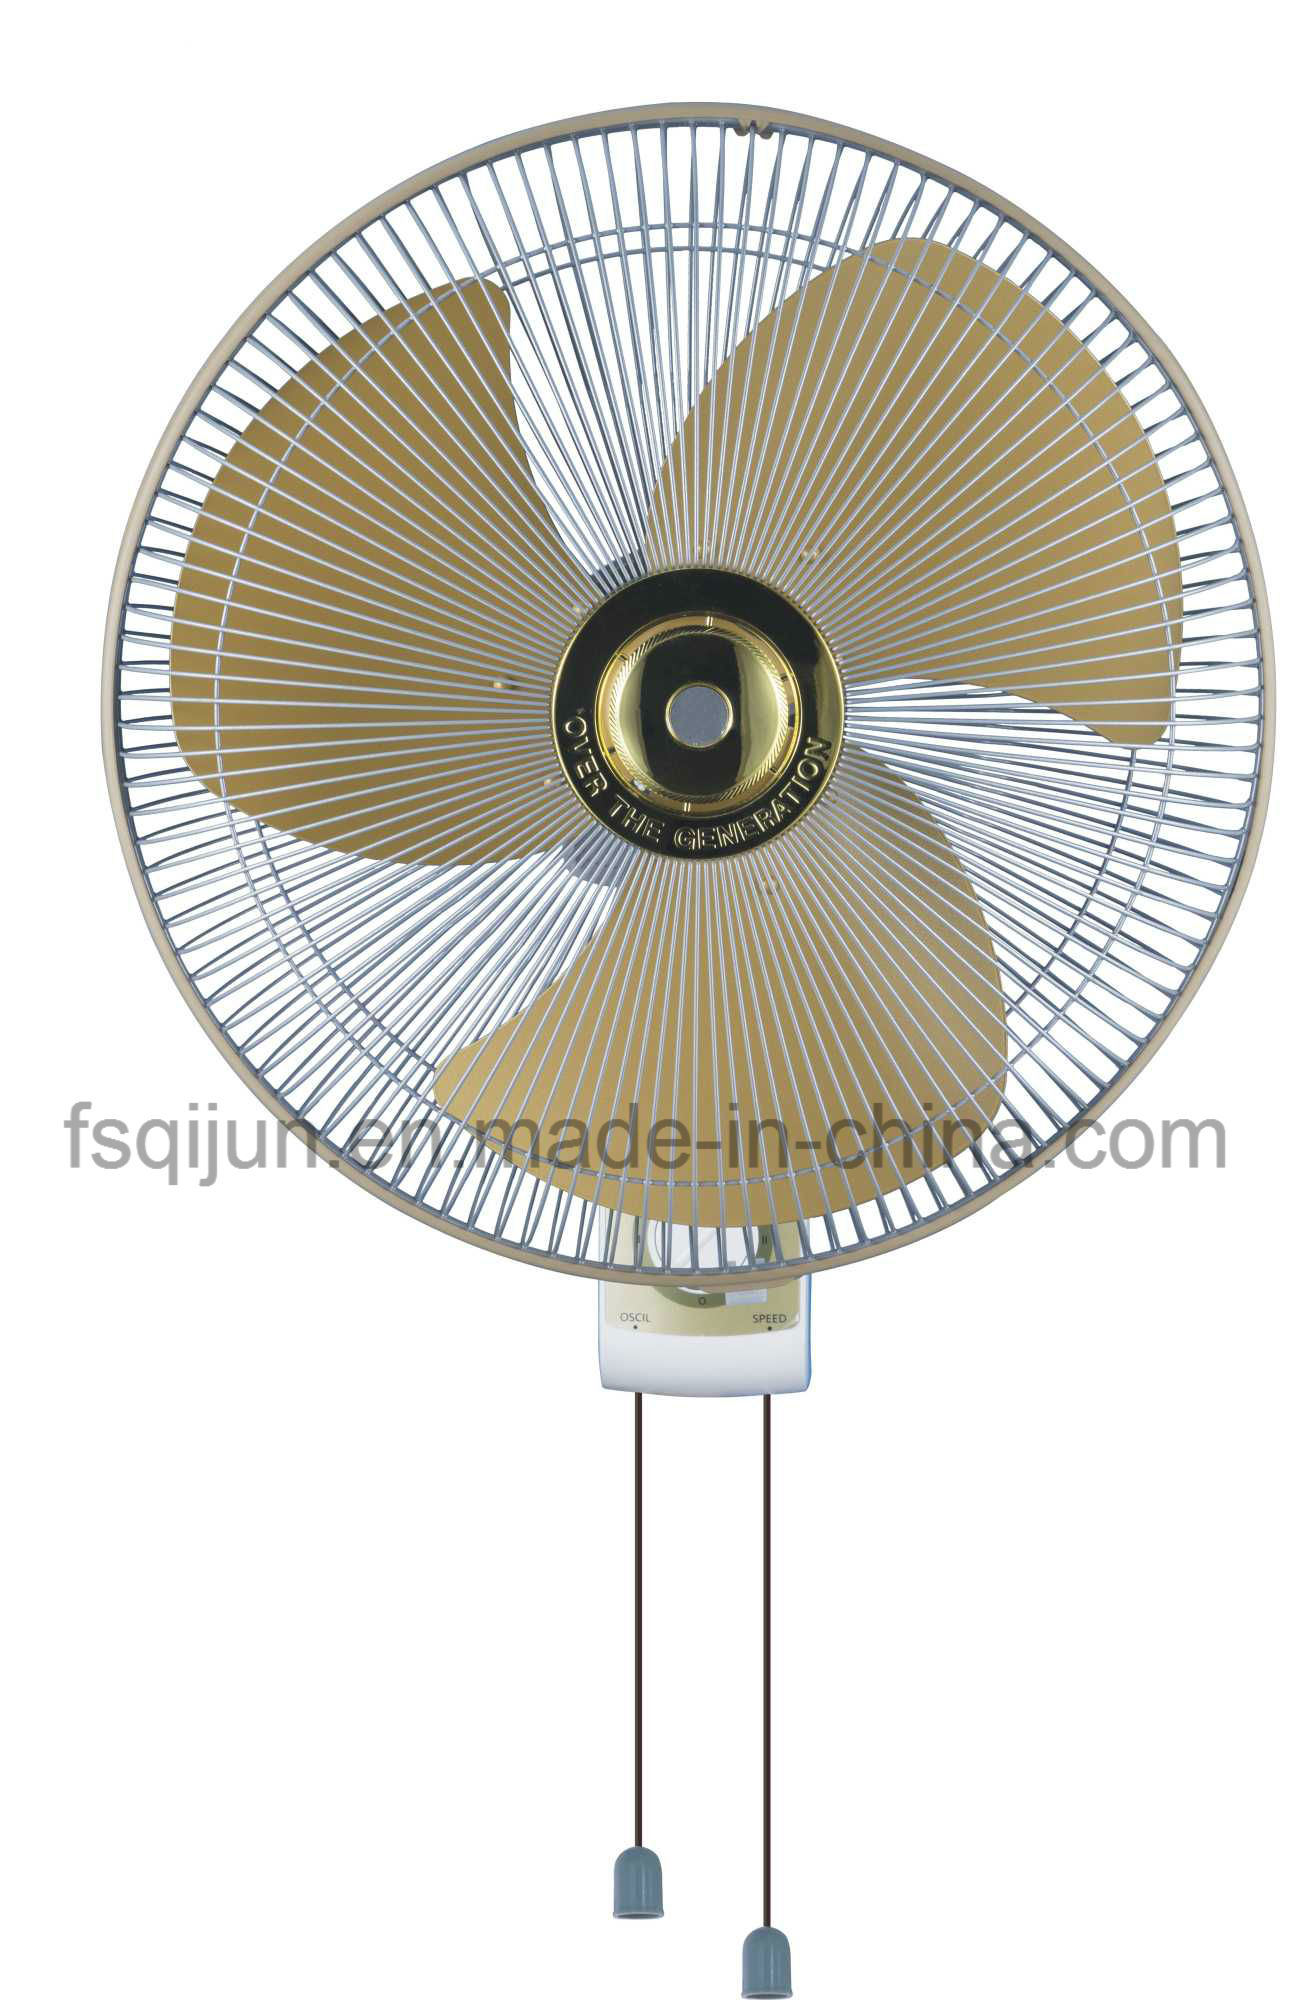 China 16 18 Inch Electrict Kdk Wall Fan With 360 Oscilation Remote Control Ce Etl Cb China Wall Fan And Ce Fan Price